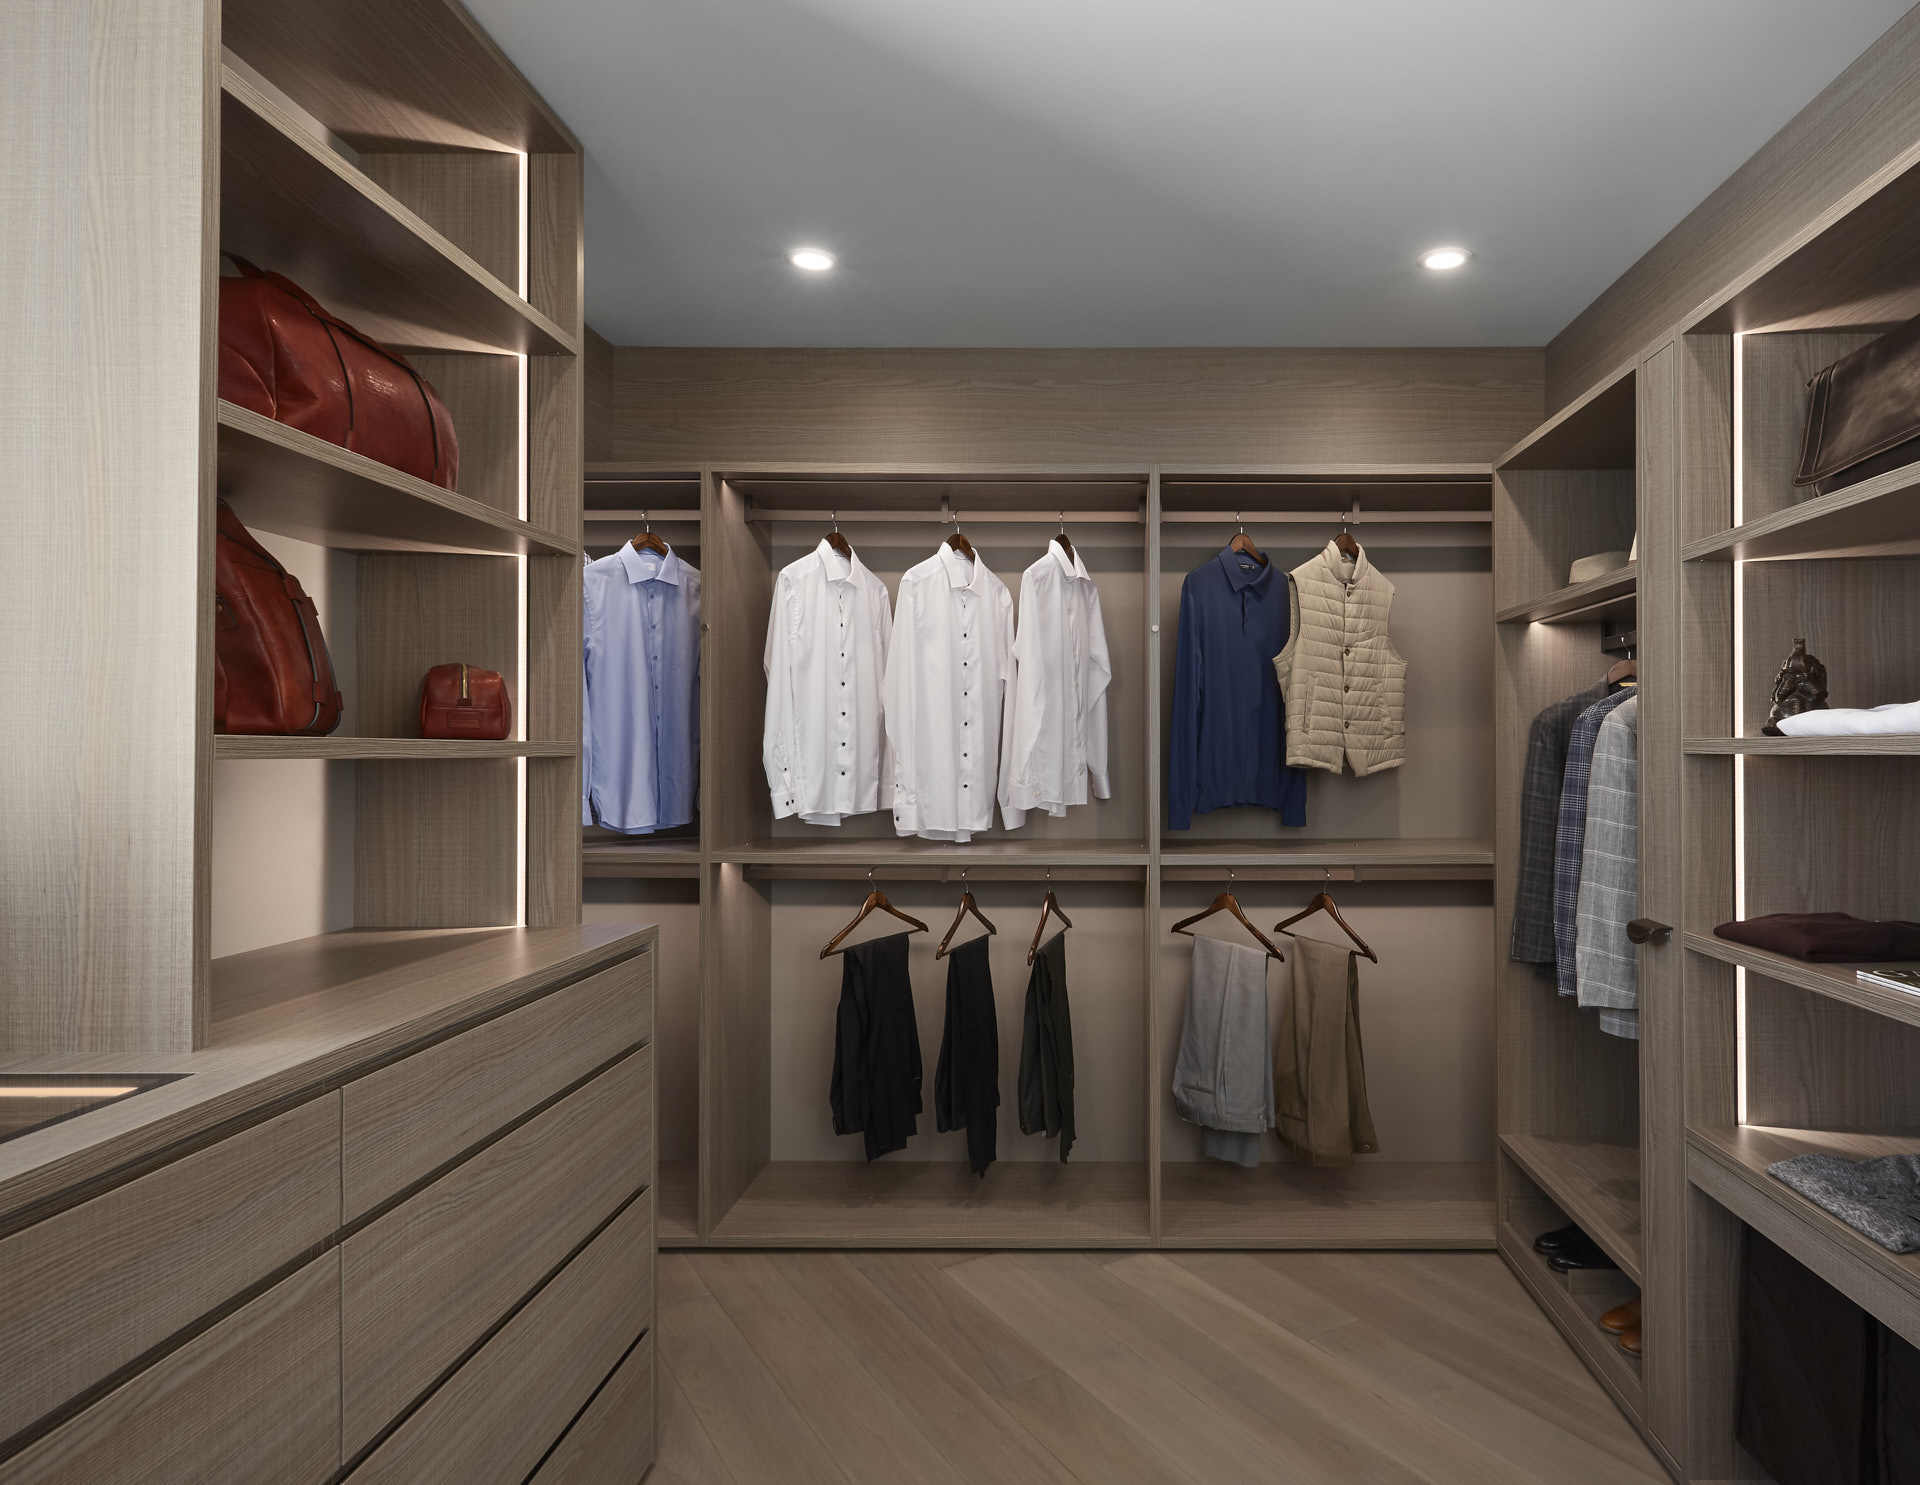 bespoke walk-in wardrobe using mid-tone finishes to achieve a masculine beachy feel